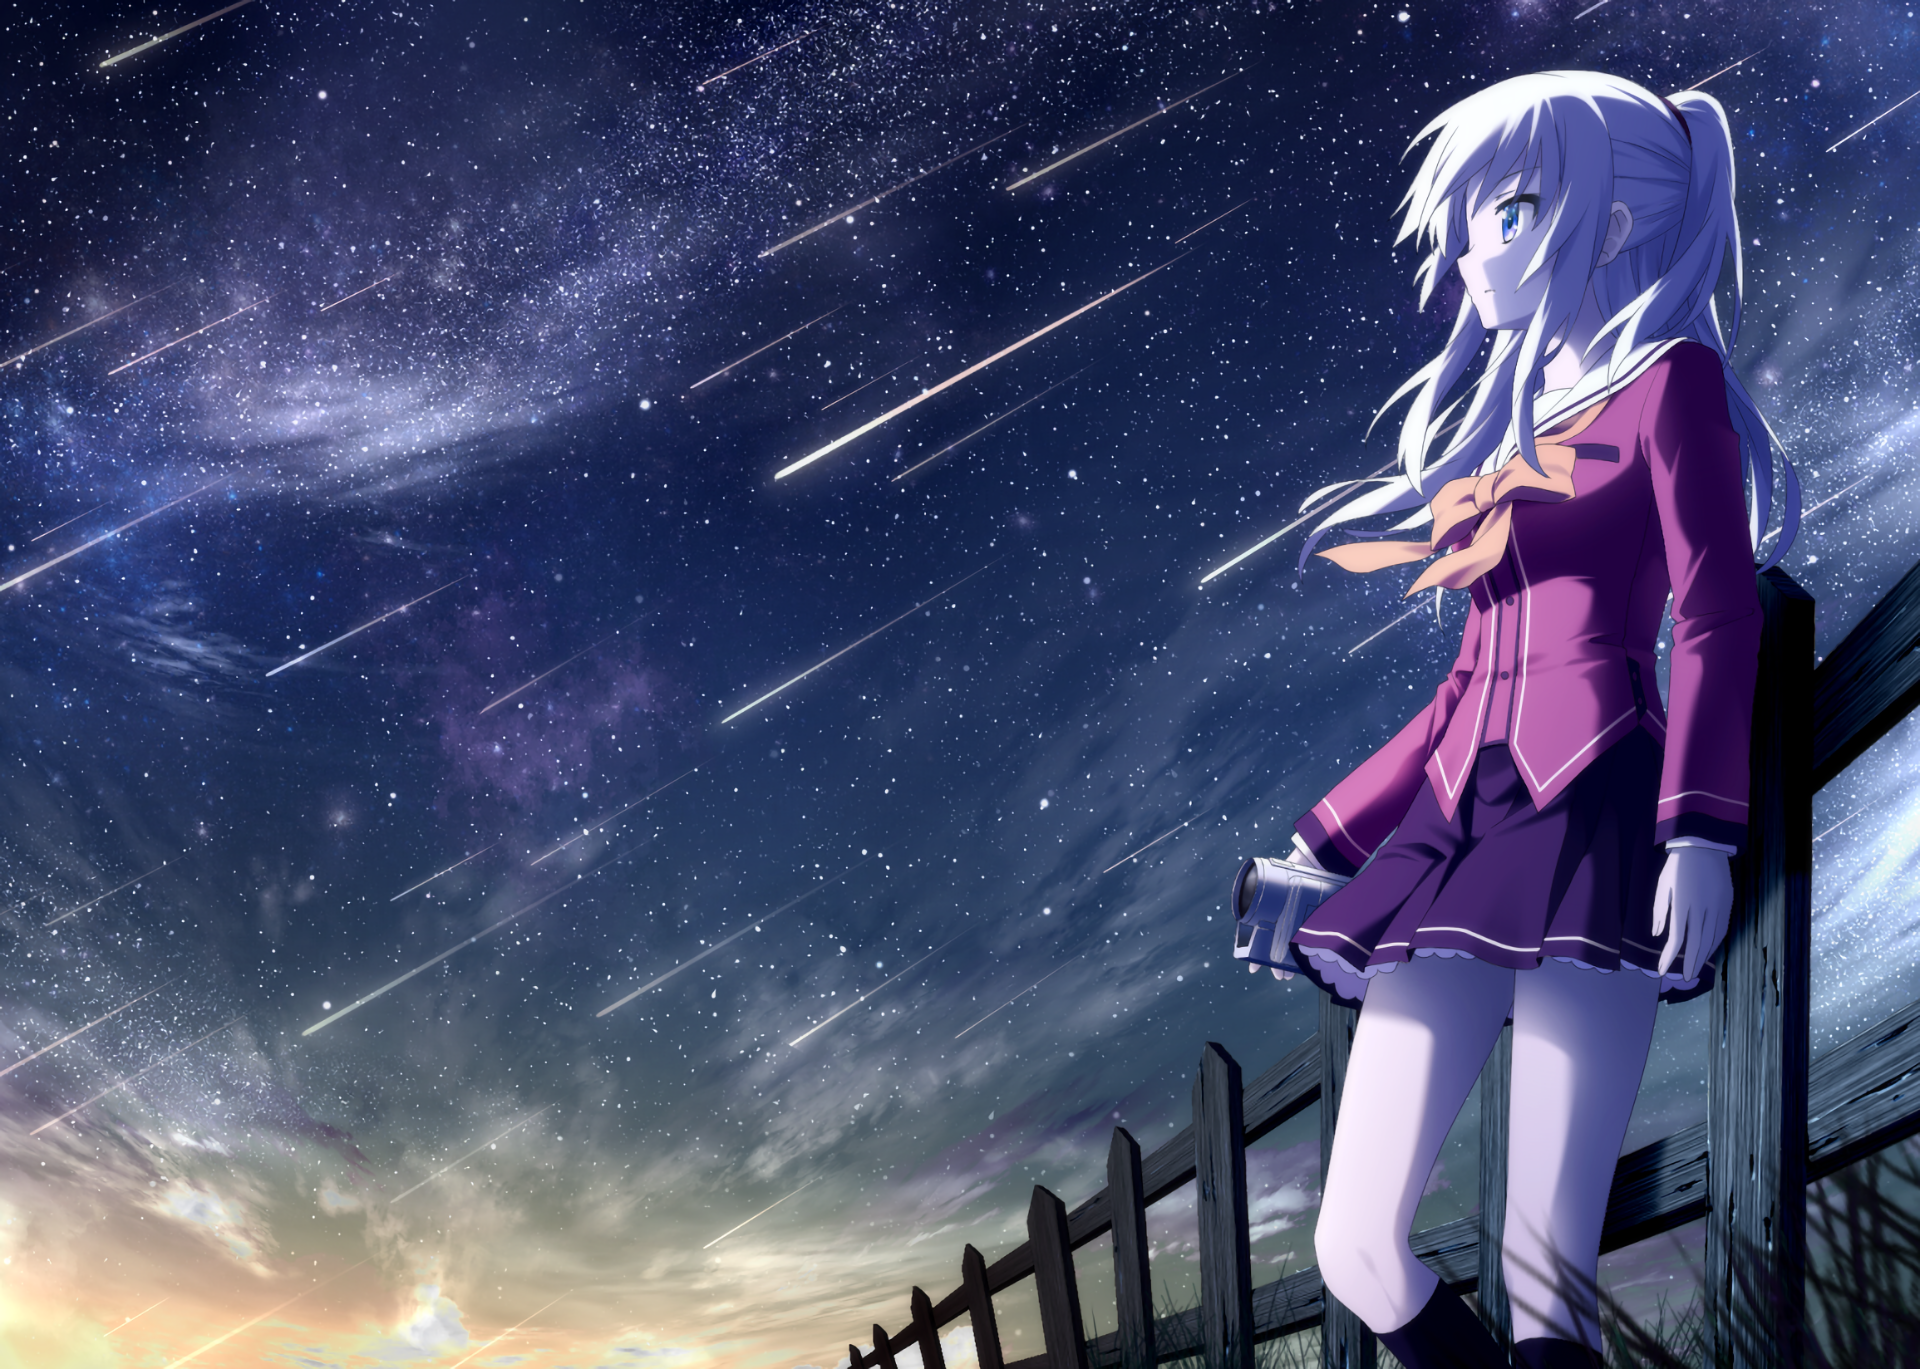 19 charlotte (anime) hd wallpapers | background images - wallpaper abyss